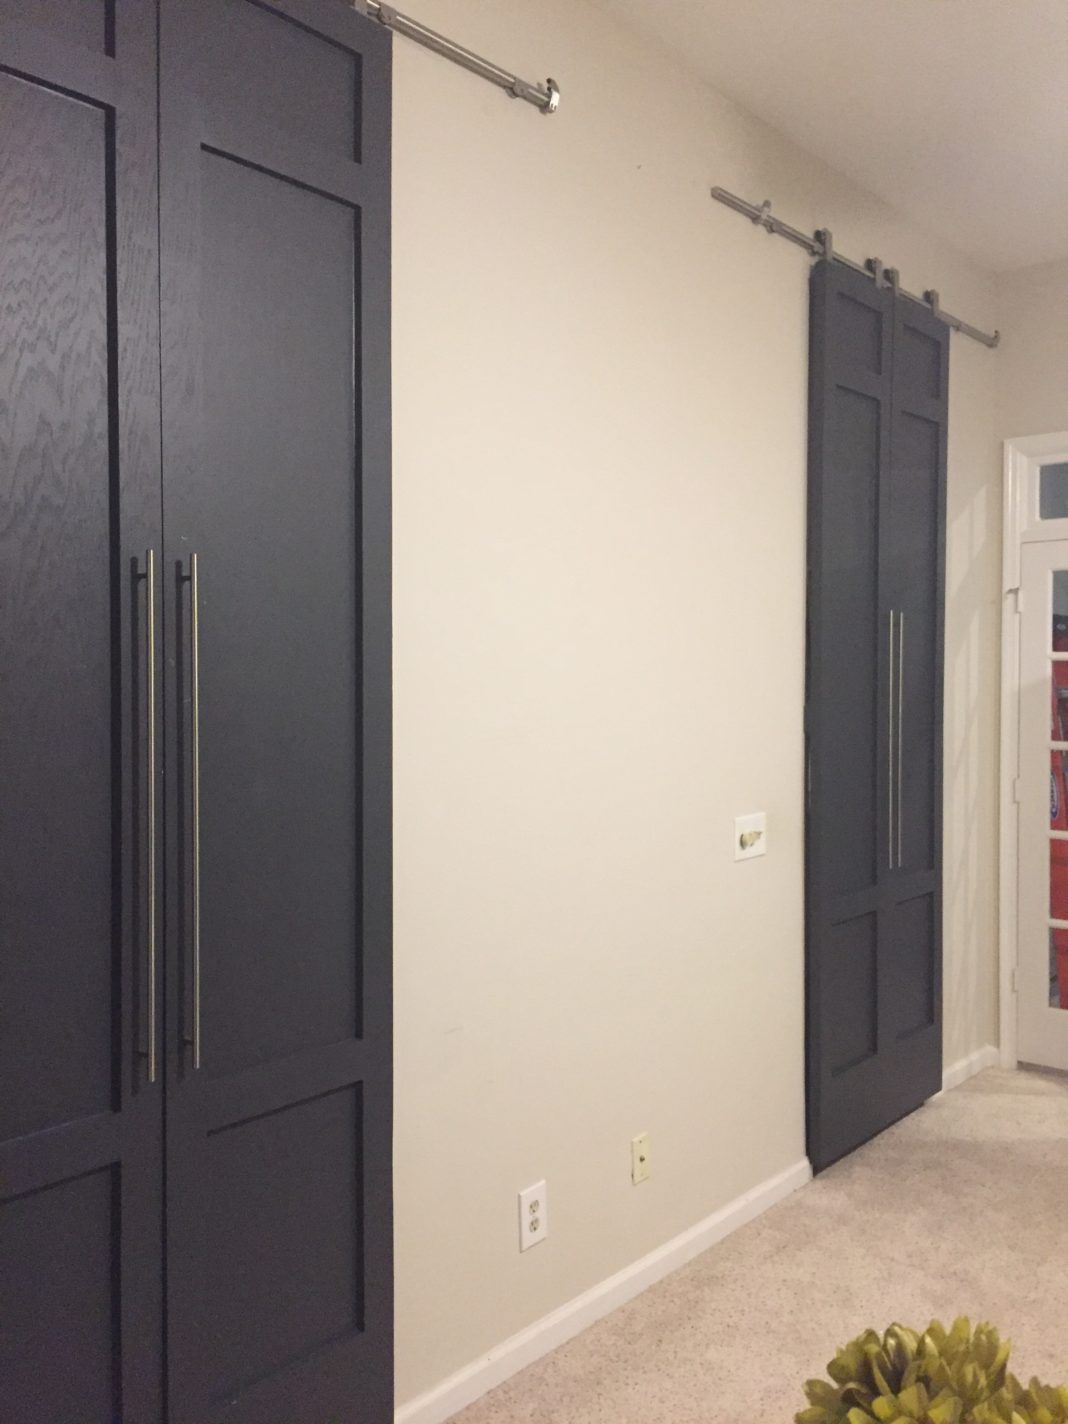 Diy Modern Style Tall Sliding Barn Doors With Pulls Part 2 Barn Door Modern Diy Barn Doors Sliding